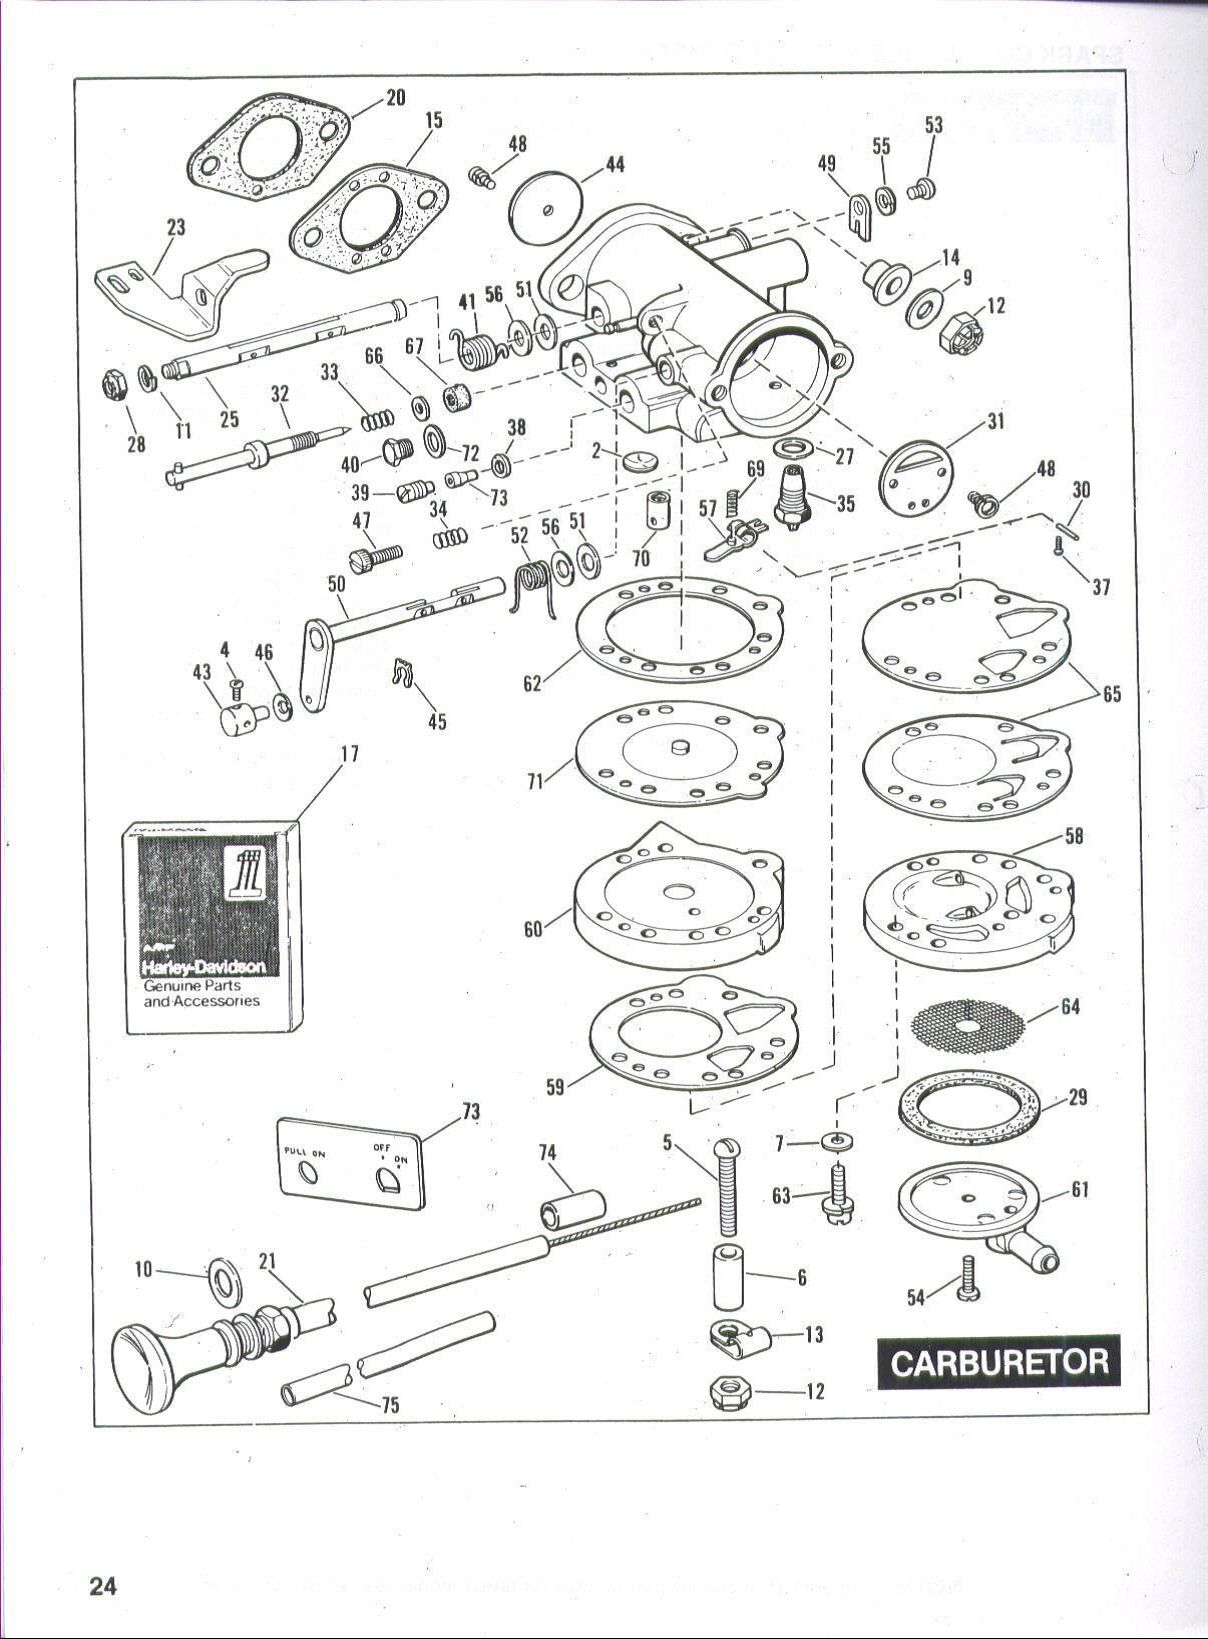 yamaha g wiring diagram yamaha gas cart wiring diagram wiring diagrams and schematics ezgo wire diagram wiring diagrams and schematics